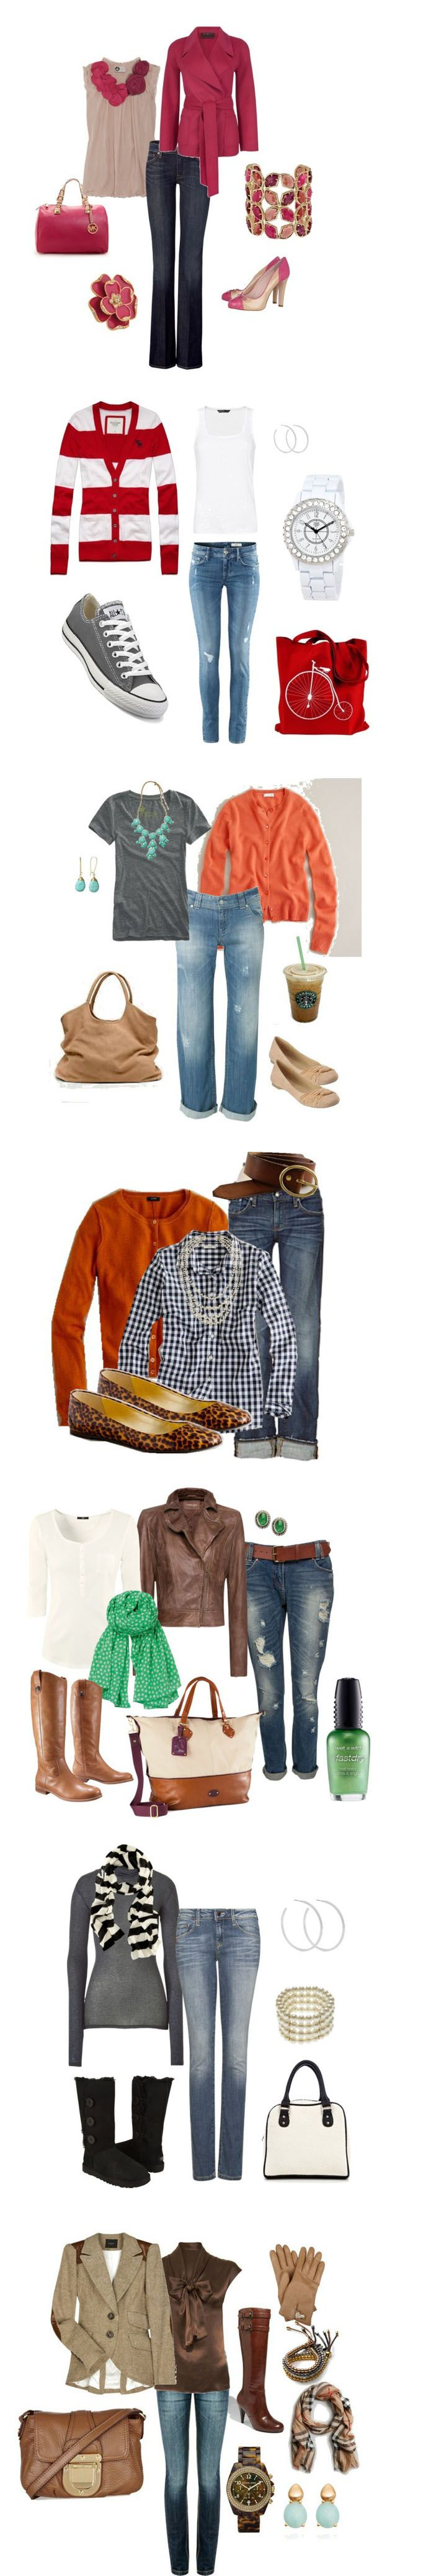 20 coloful fall fashions  All of them except for the soft black boots. They don't go very well.